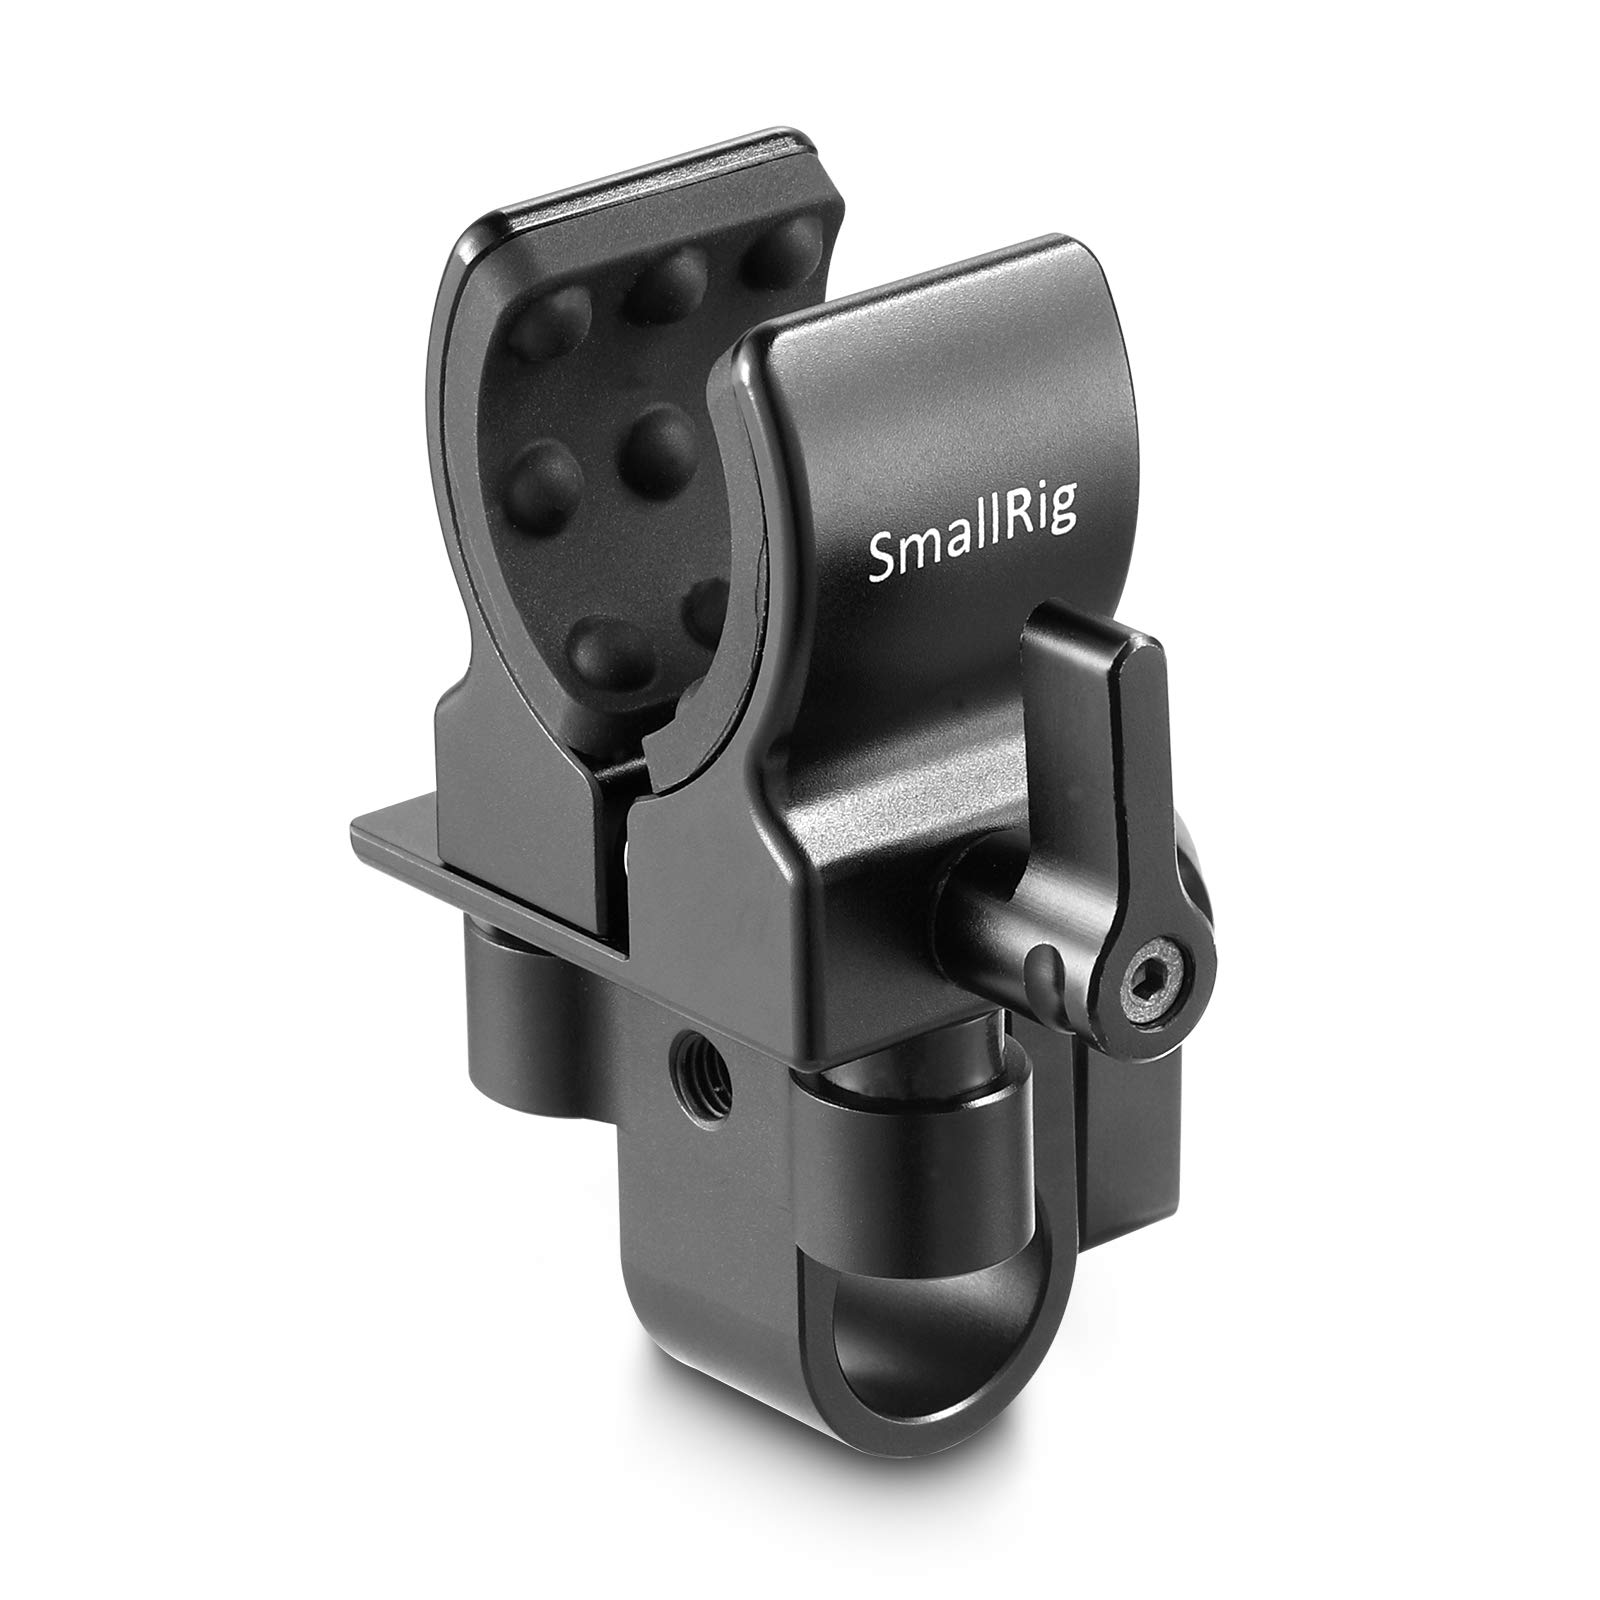 SMALLRIG Microphone Mount, Shotgun Microphones Clip (for 19-25mm Diameter) with Elastic Silica Gel, Shock and Noise Absorption 1993 by SMALLRIG